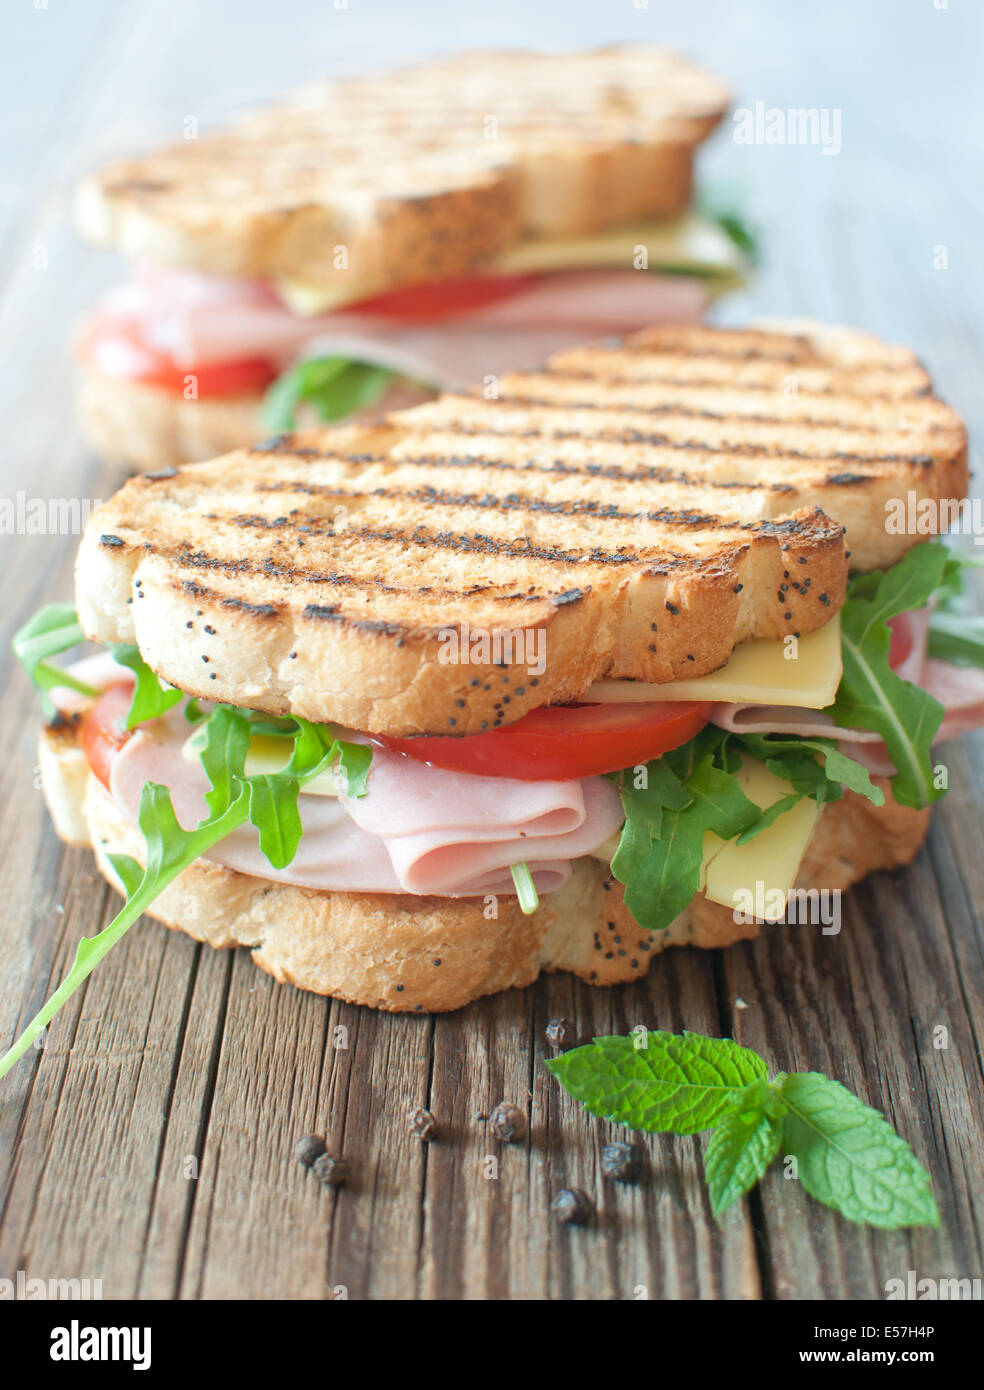 Grilled deli sandwiches - Stock Image